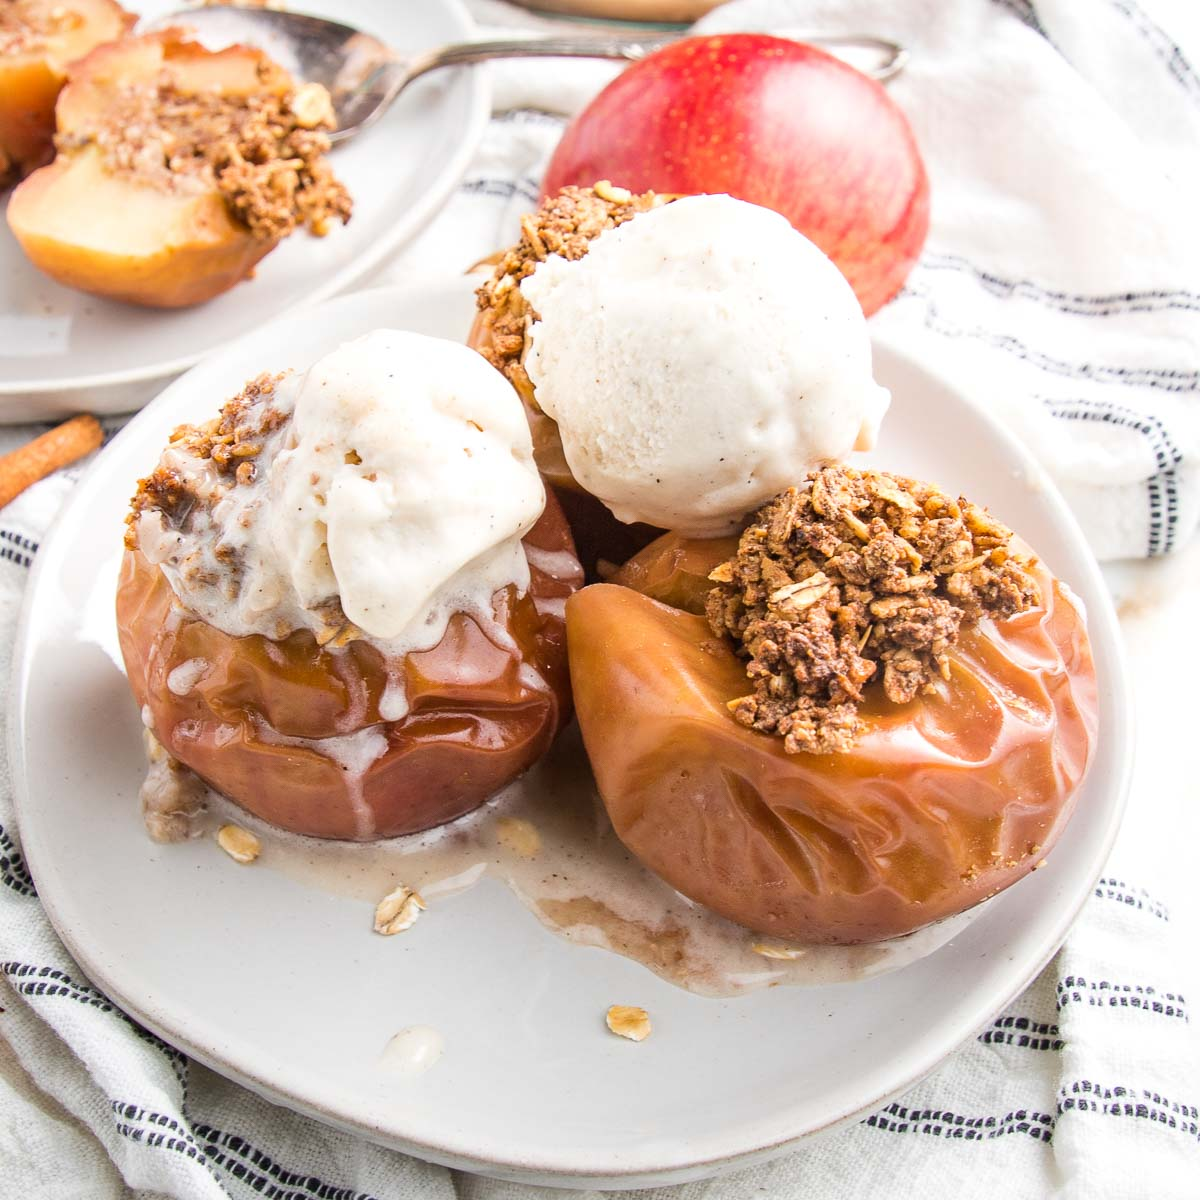 White plate with three baked apples, stuffed with cinnamon maple oats and topped with vanilla ice cream